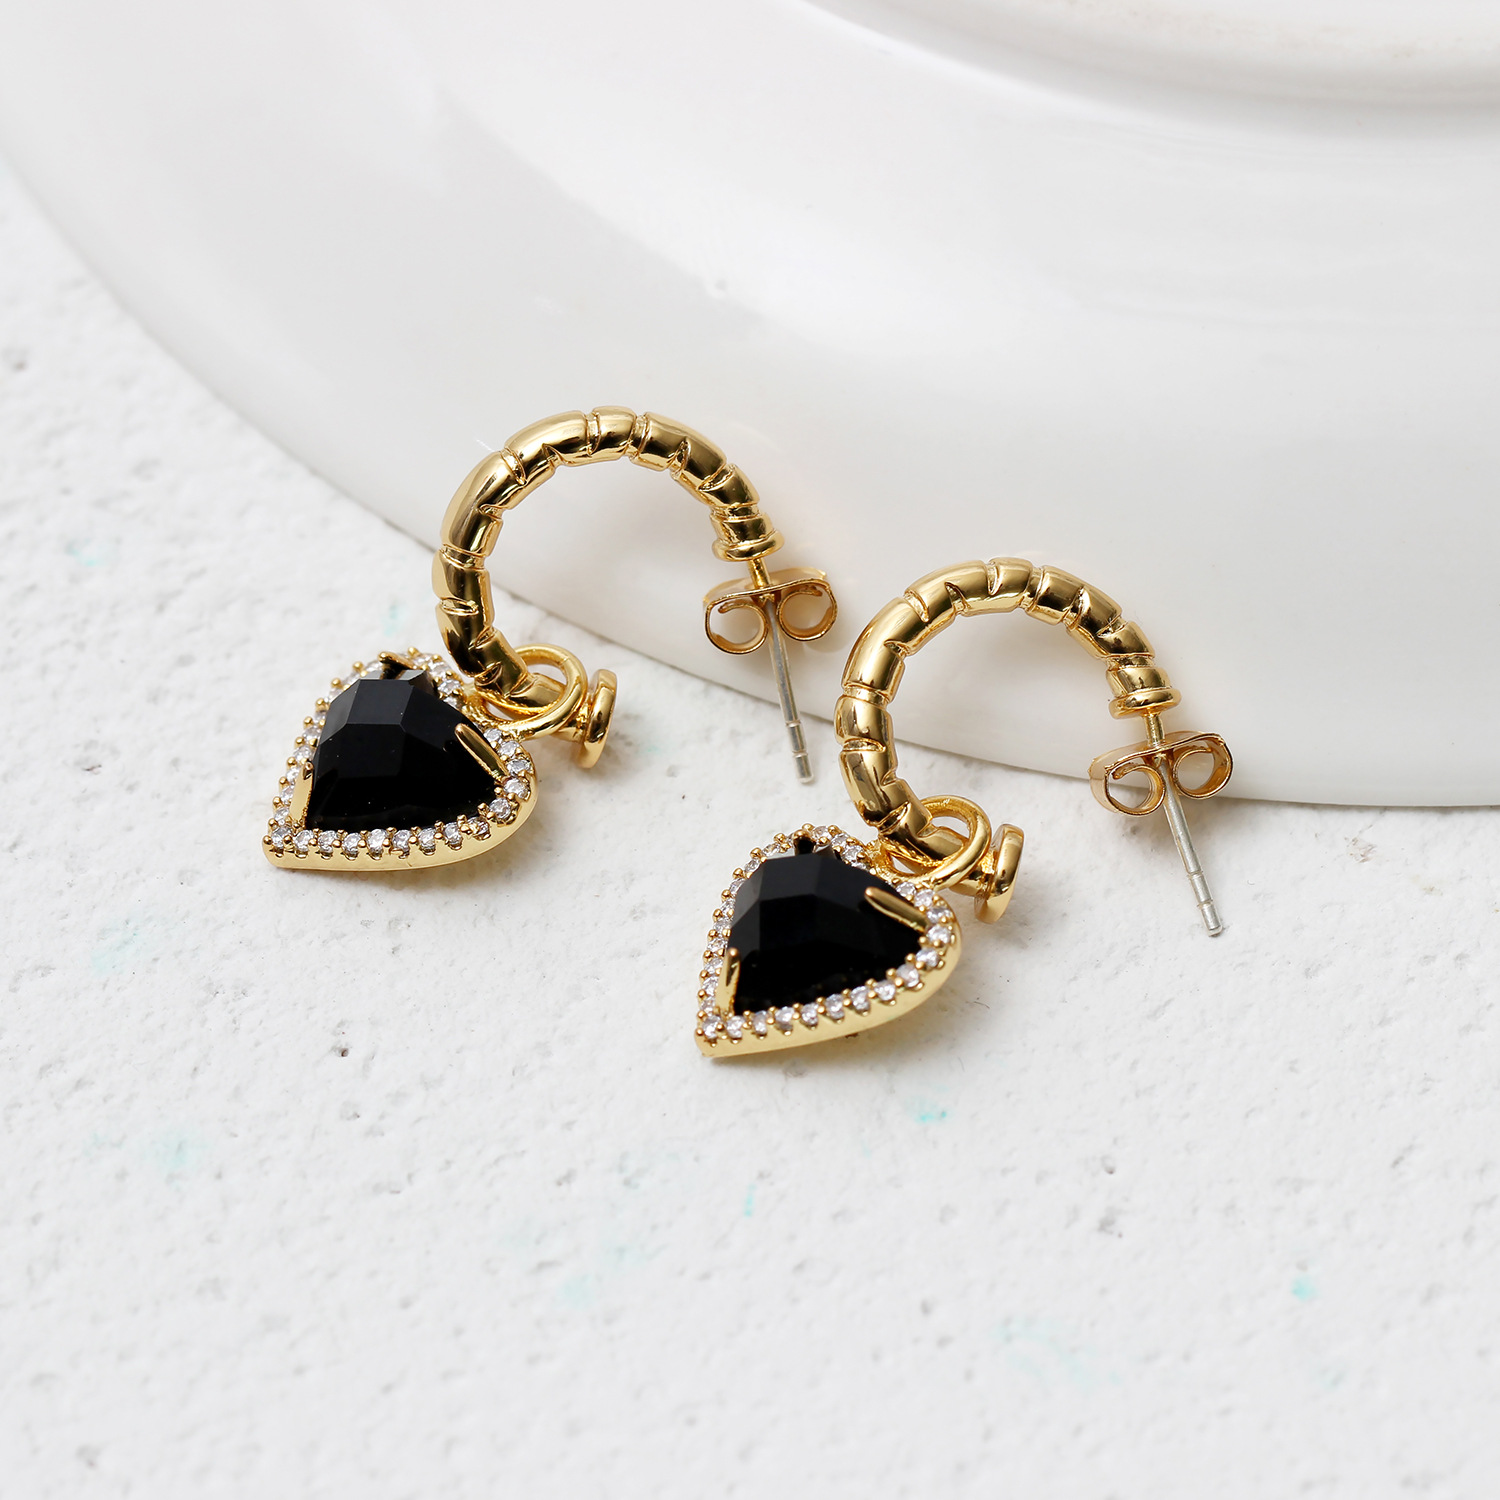 Fashionable, light and luxurious, elegant, copper plated gold inlaid diamond heart-shaped Black Crystal Gemstone Earrings, exaggerated Earrings